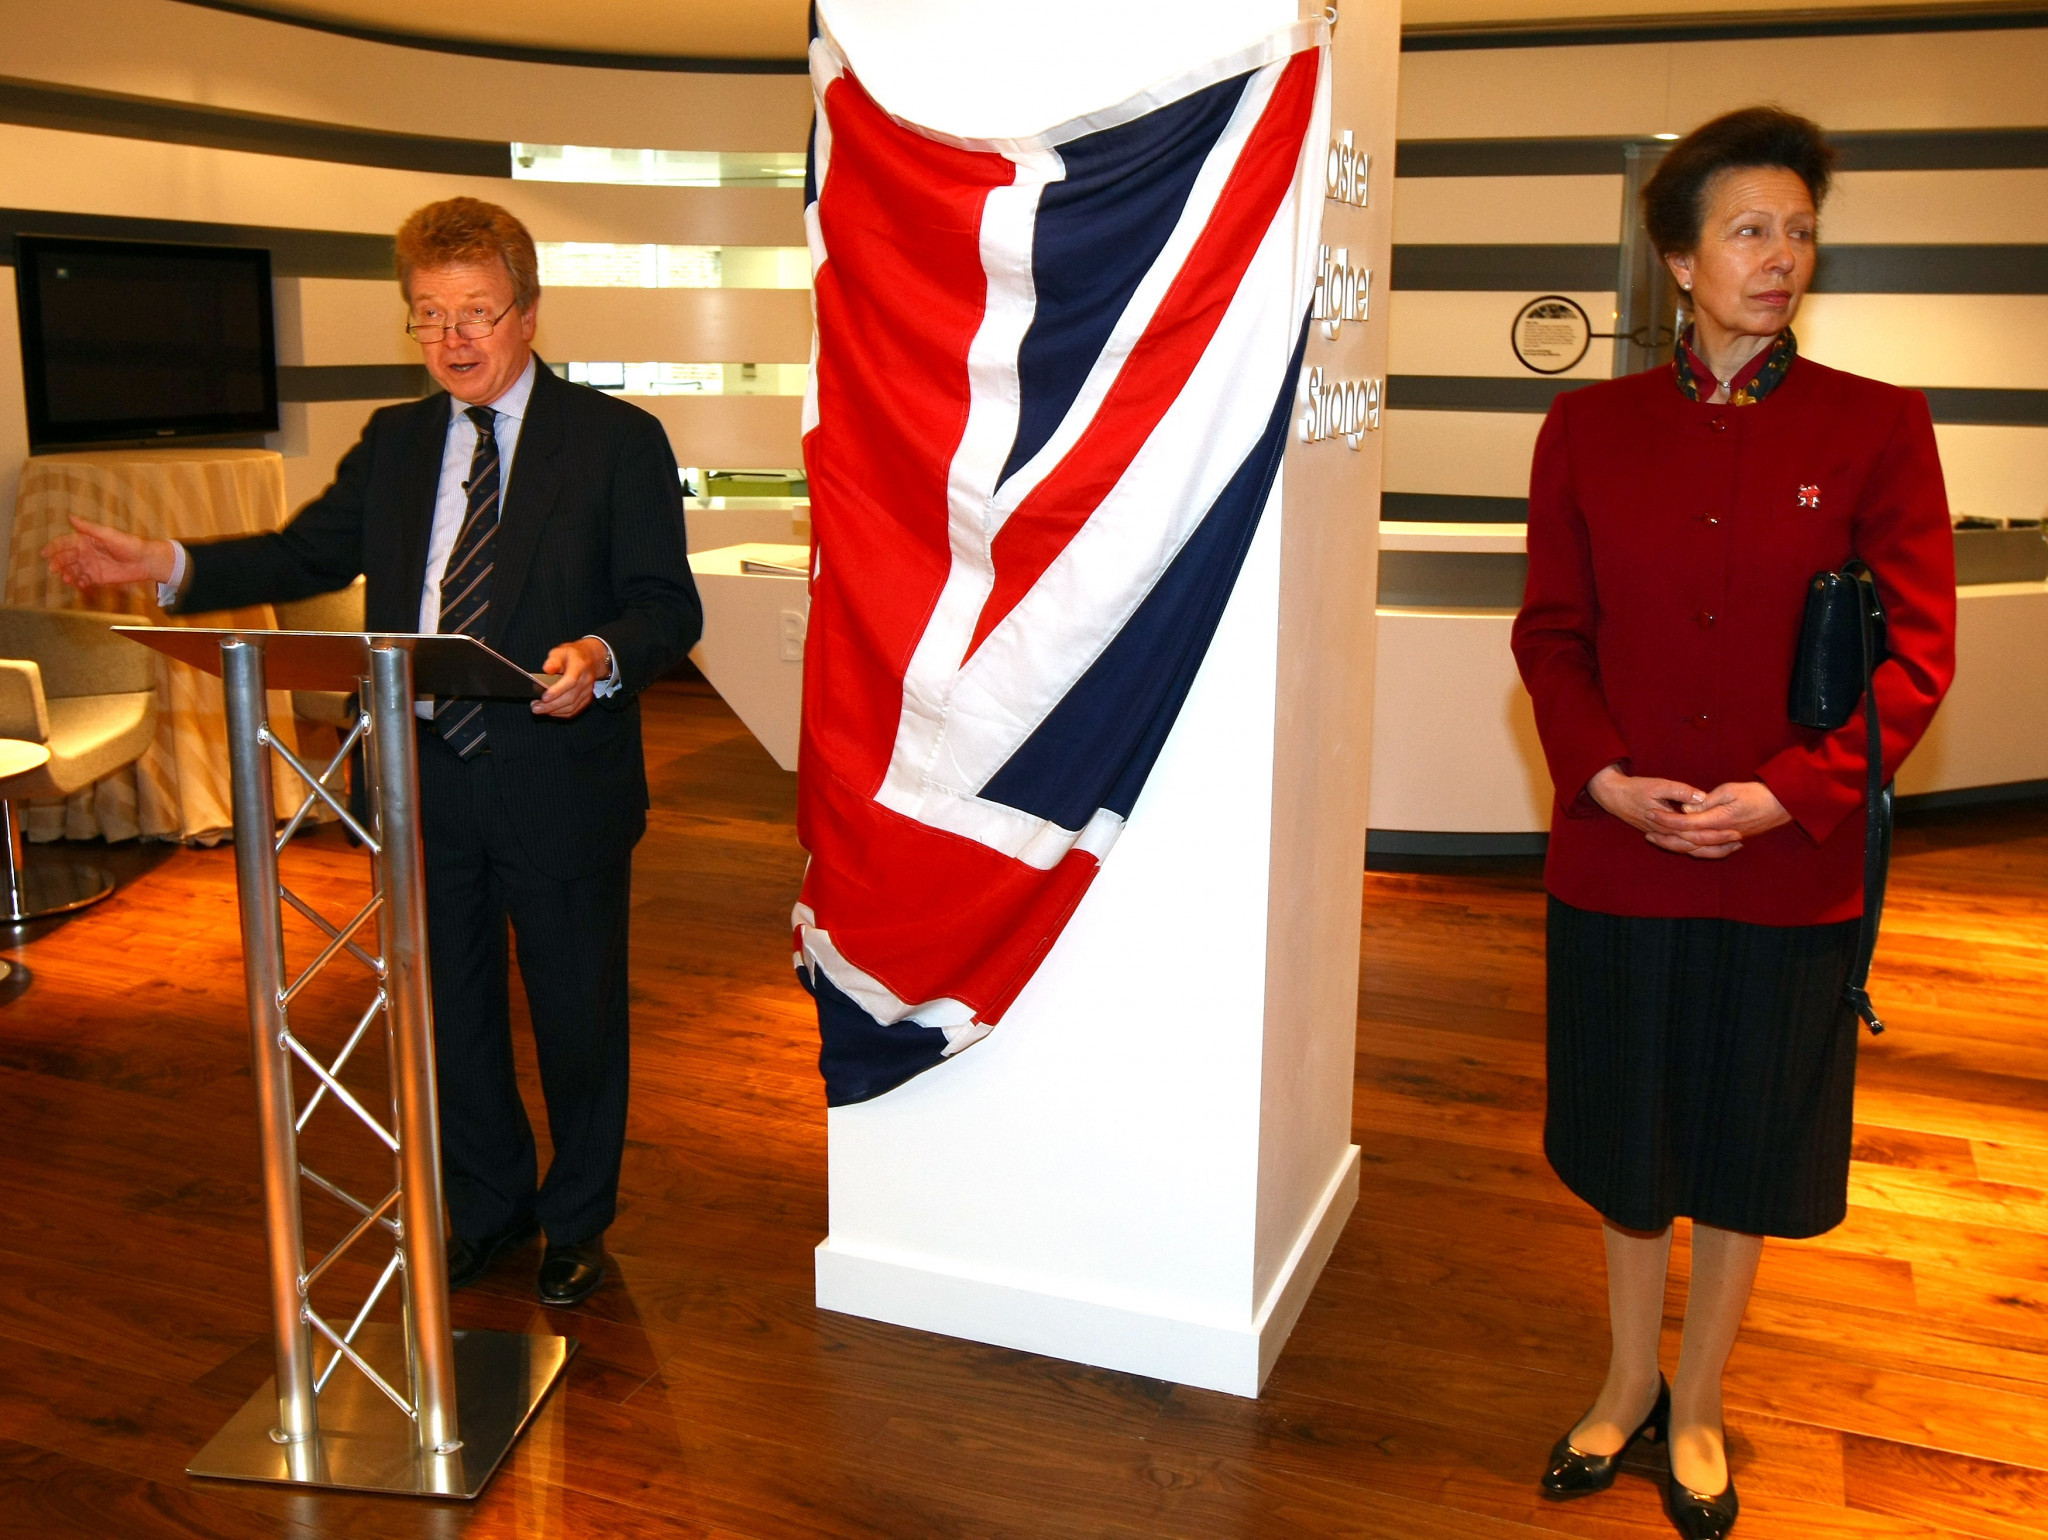 The British Olympic Association will leave their current London headquarters in Charlotte Street, where they have been based since 2009 when the Princess Royal officially opened them ©Getty Images